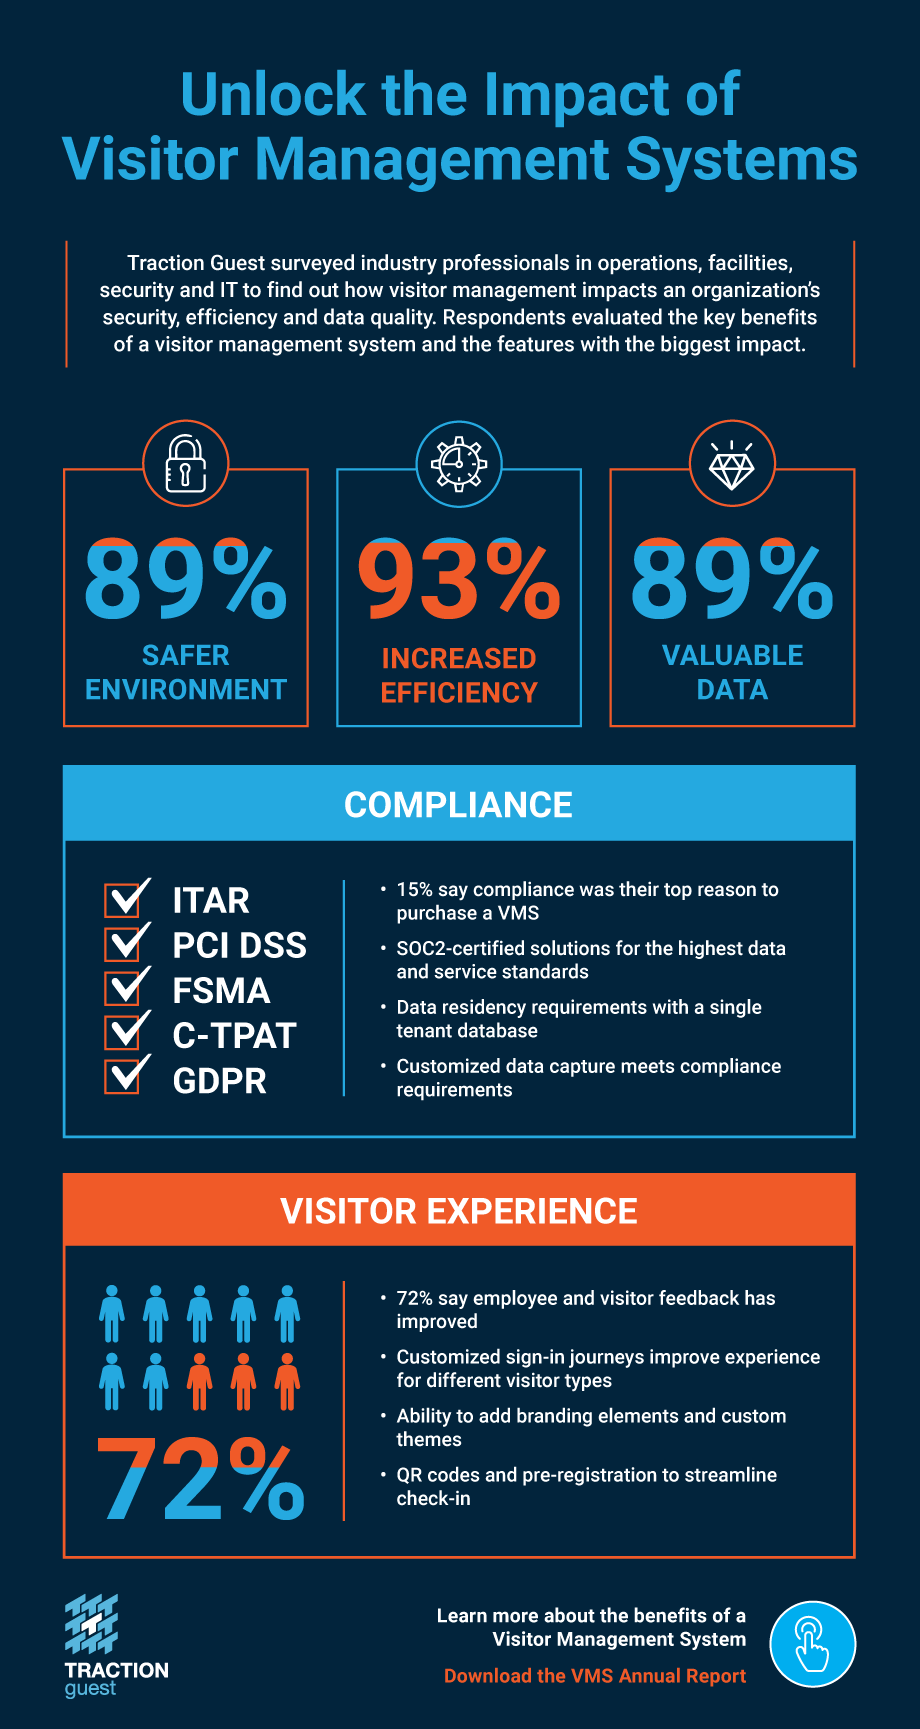 Benefits of visitor management systems infographic